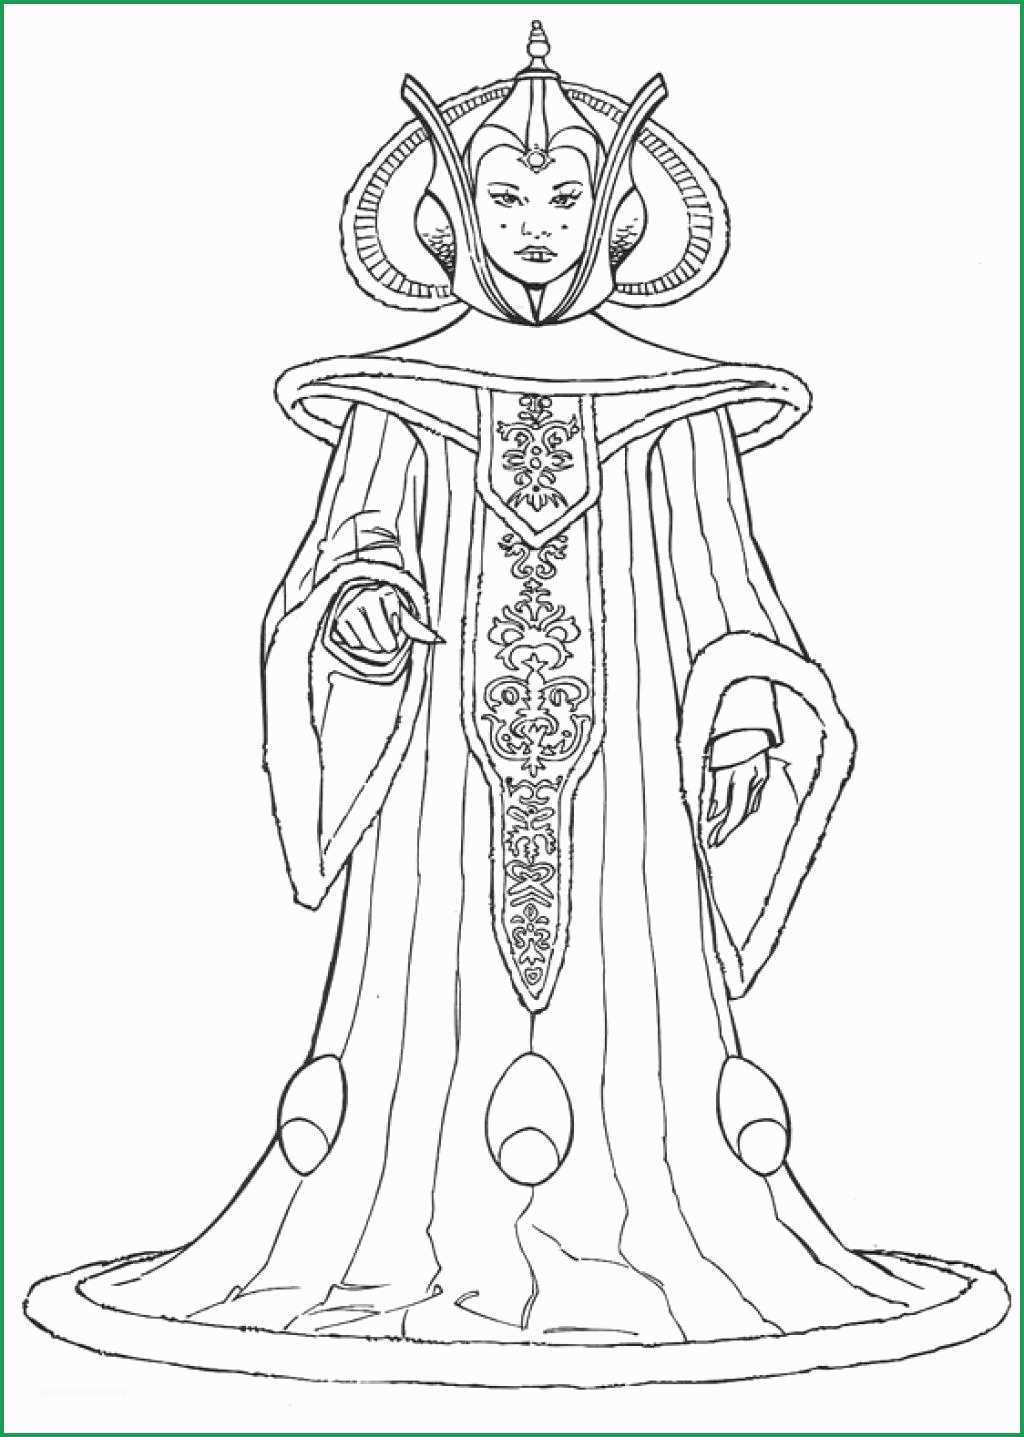 Starwars Coloring Pages Luxury Photograph Of Starwars Coloring Pages Coloring Pages